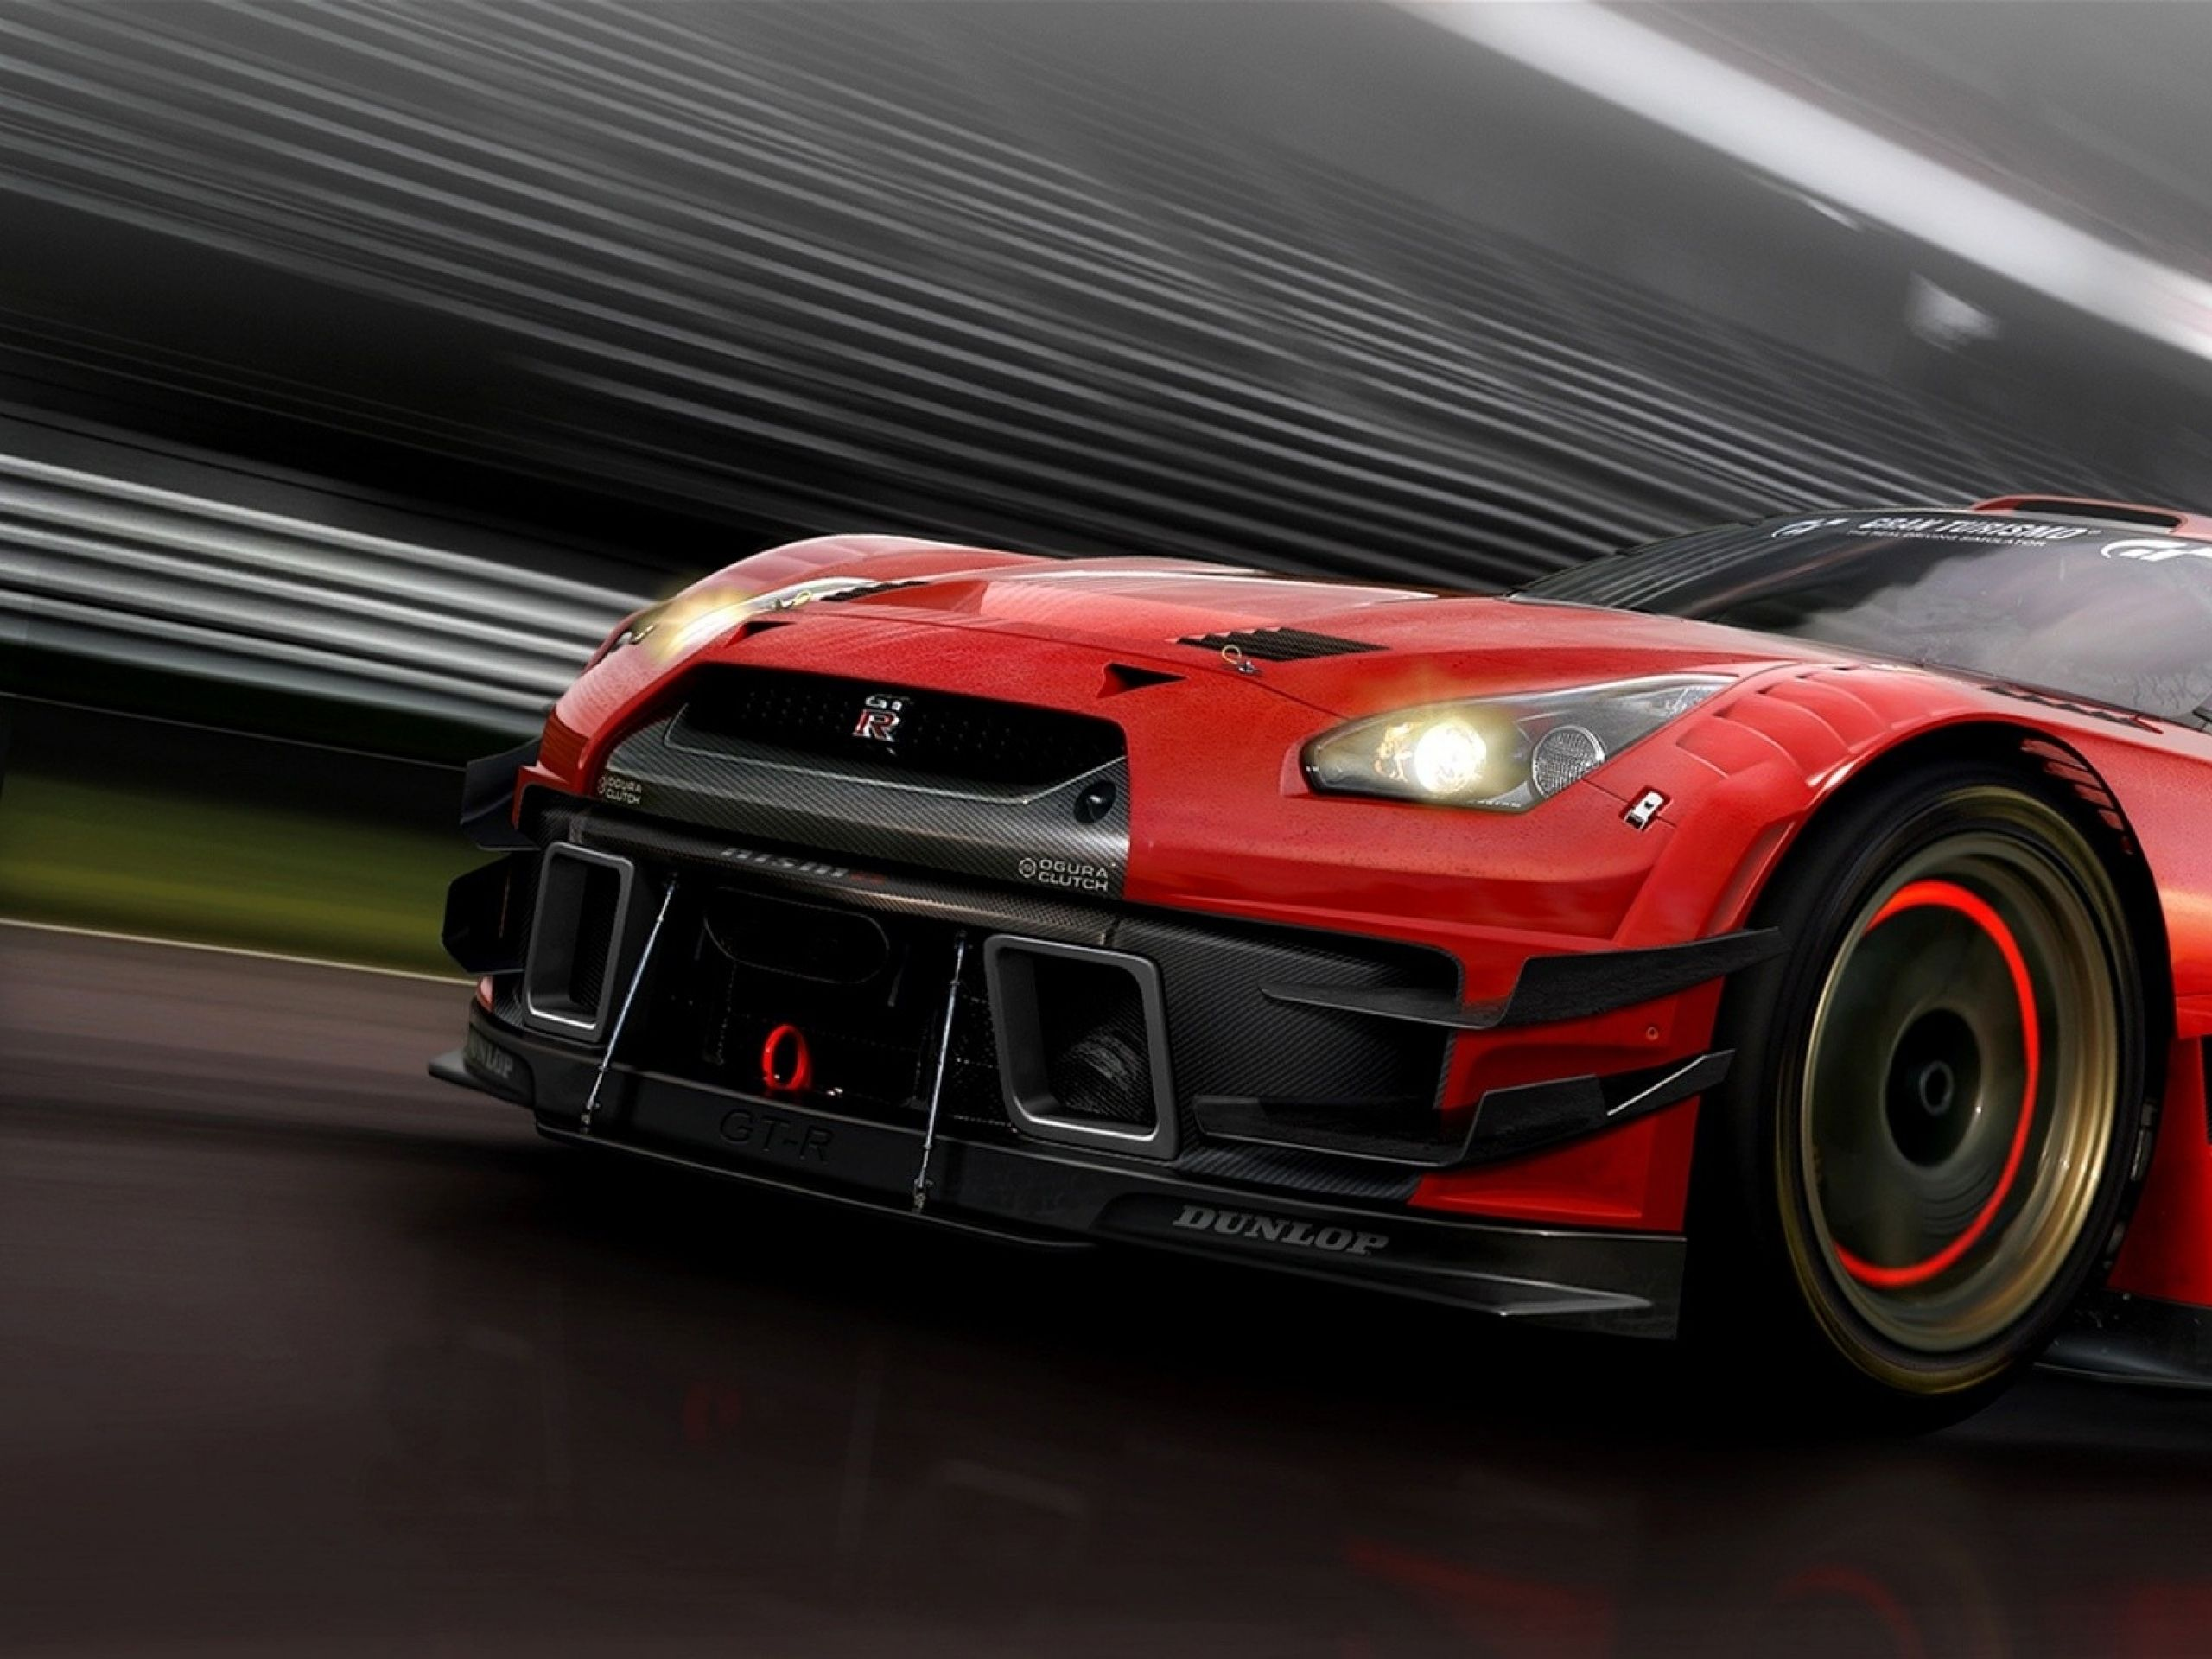 Nissan gtr sport car in red color on hd wallpapers nissan hdwallpapers www